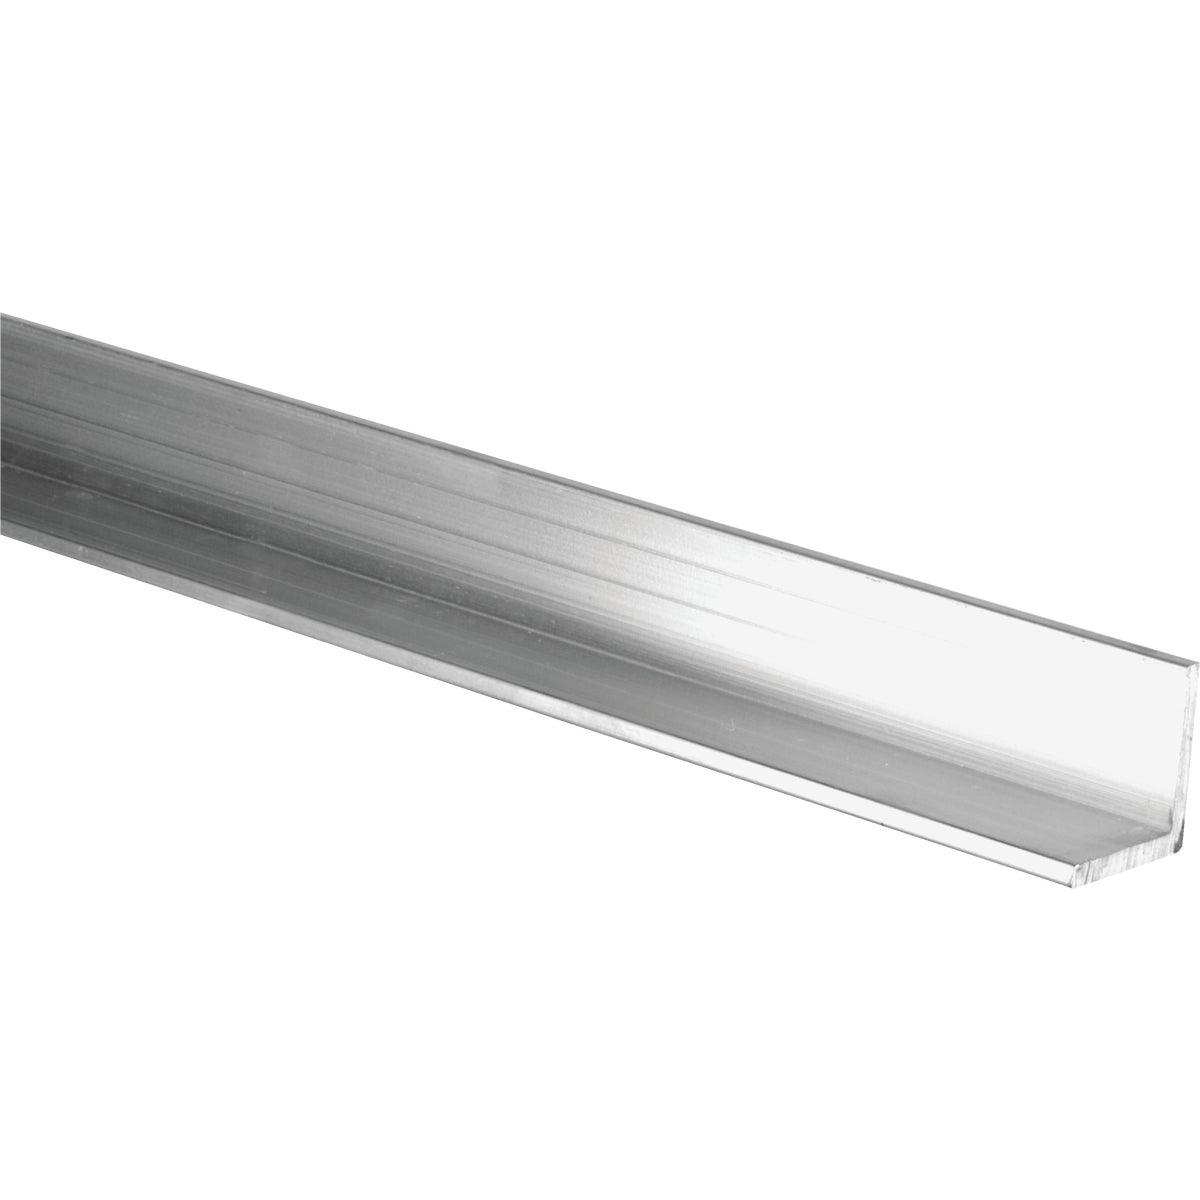 1/8X3/4X8' ALUM ANGLE - N258343 by National Mfg Co